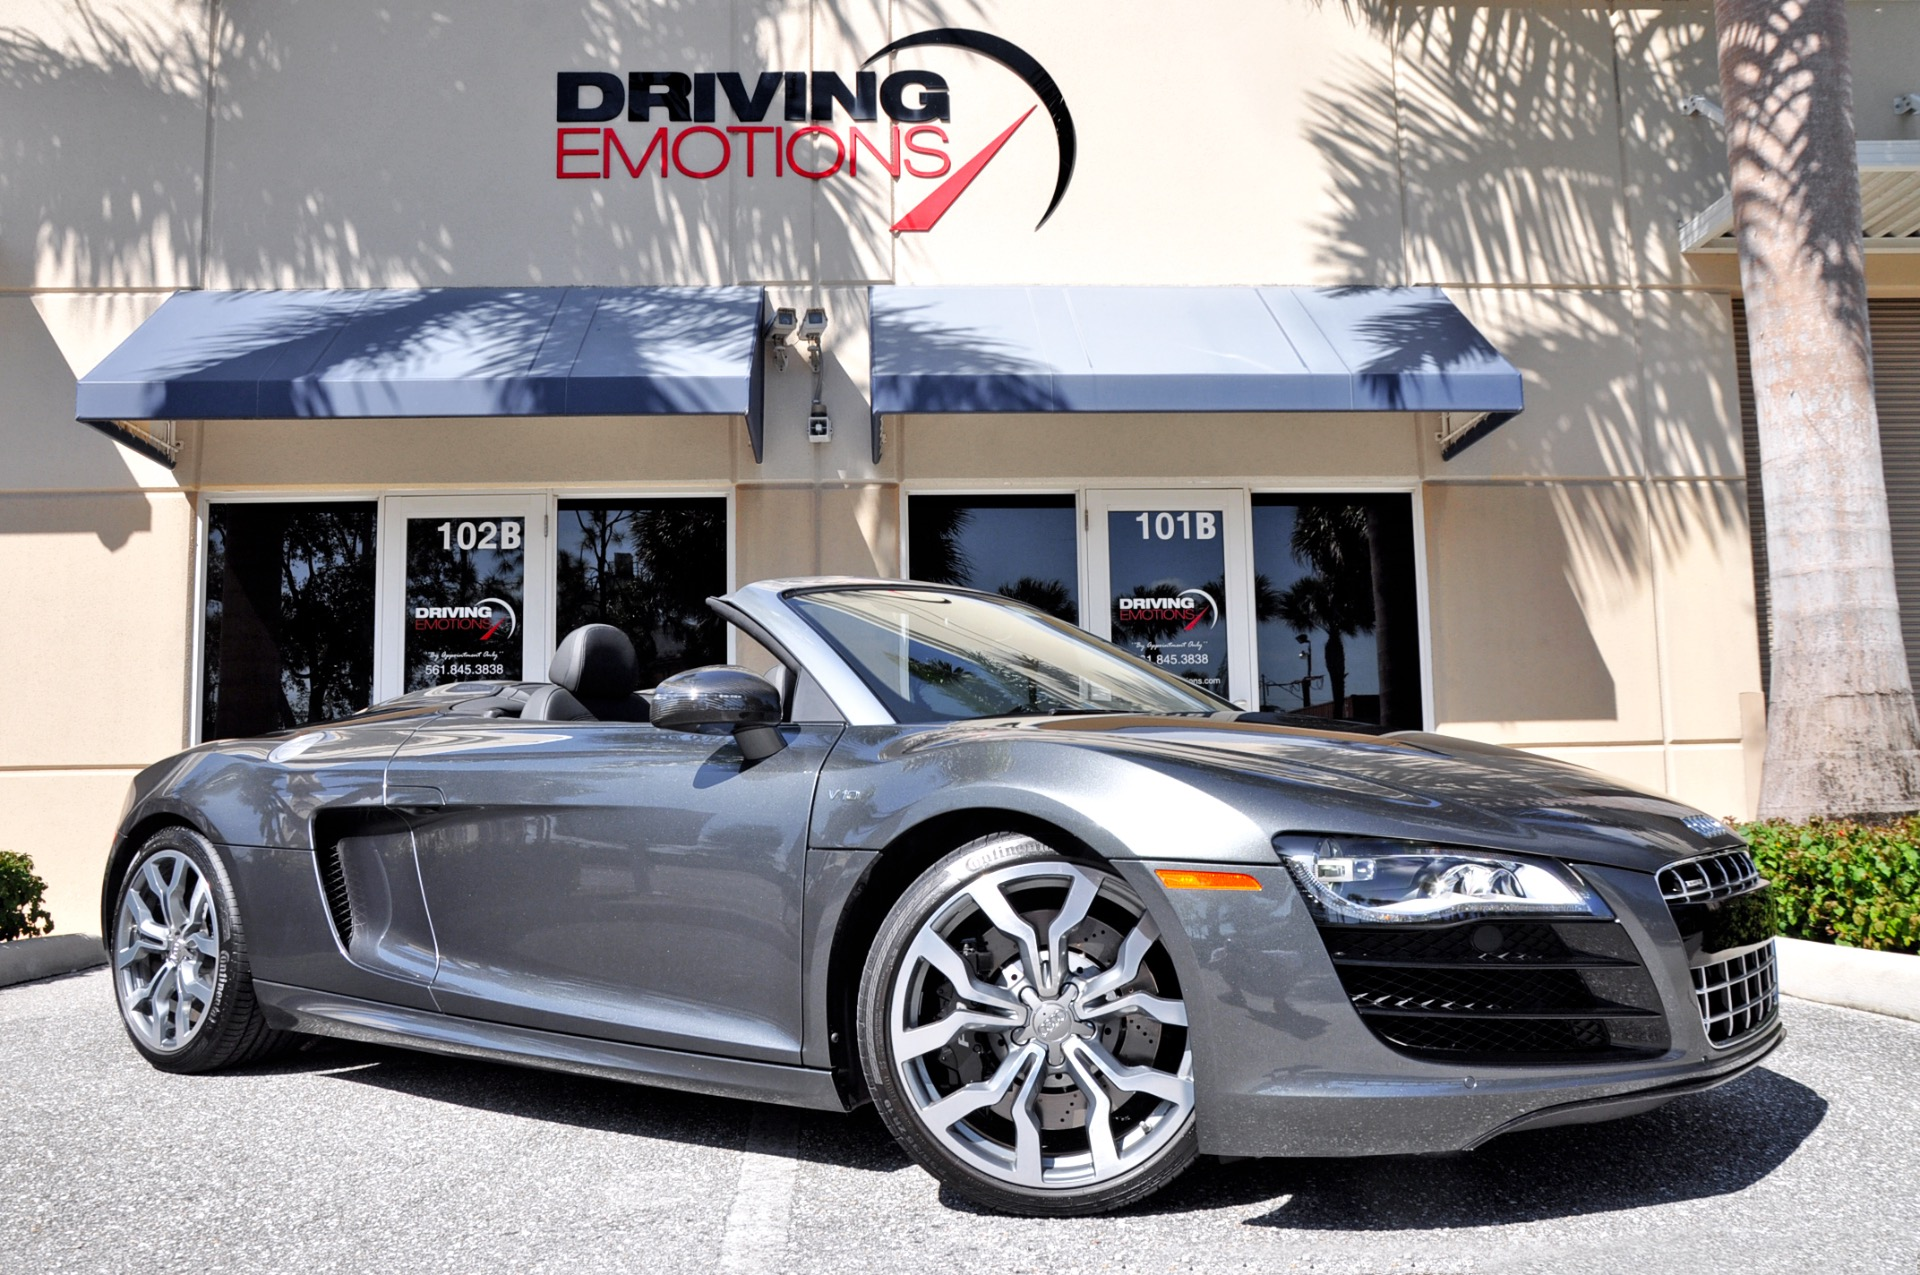 2012 audi r8 5 2 v10 spyder quattro stock 5903 for sale. Black Bedroom Furniture Sets. Home Design Ideas